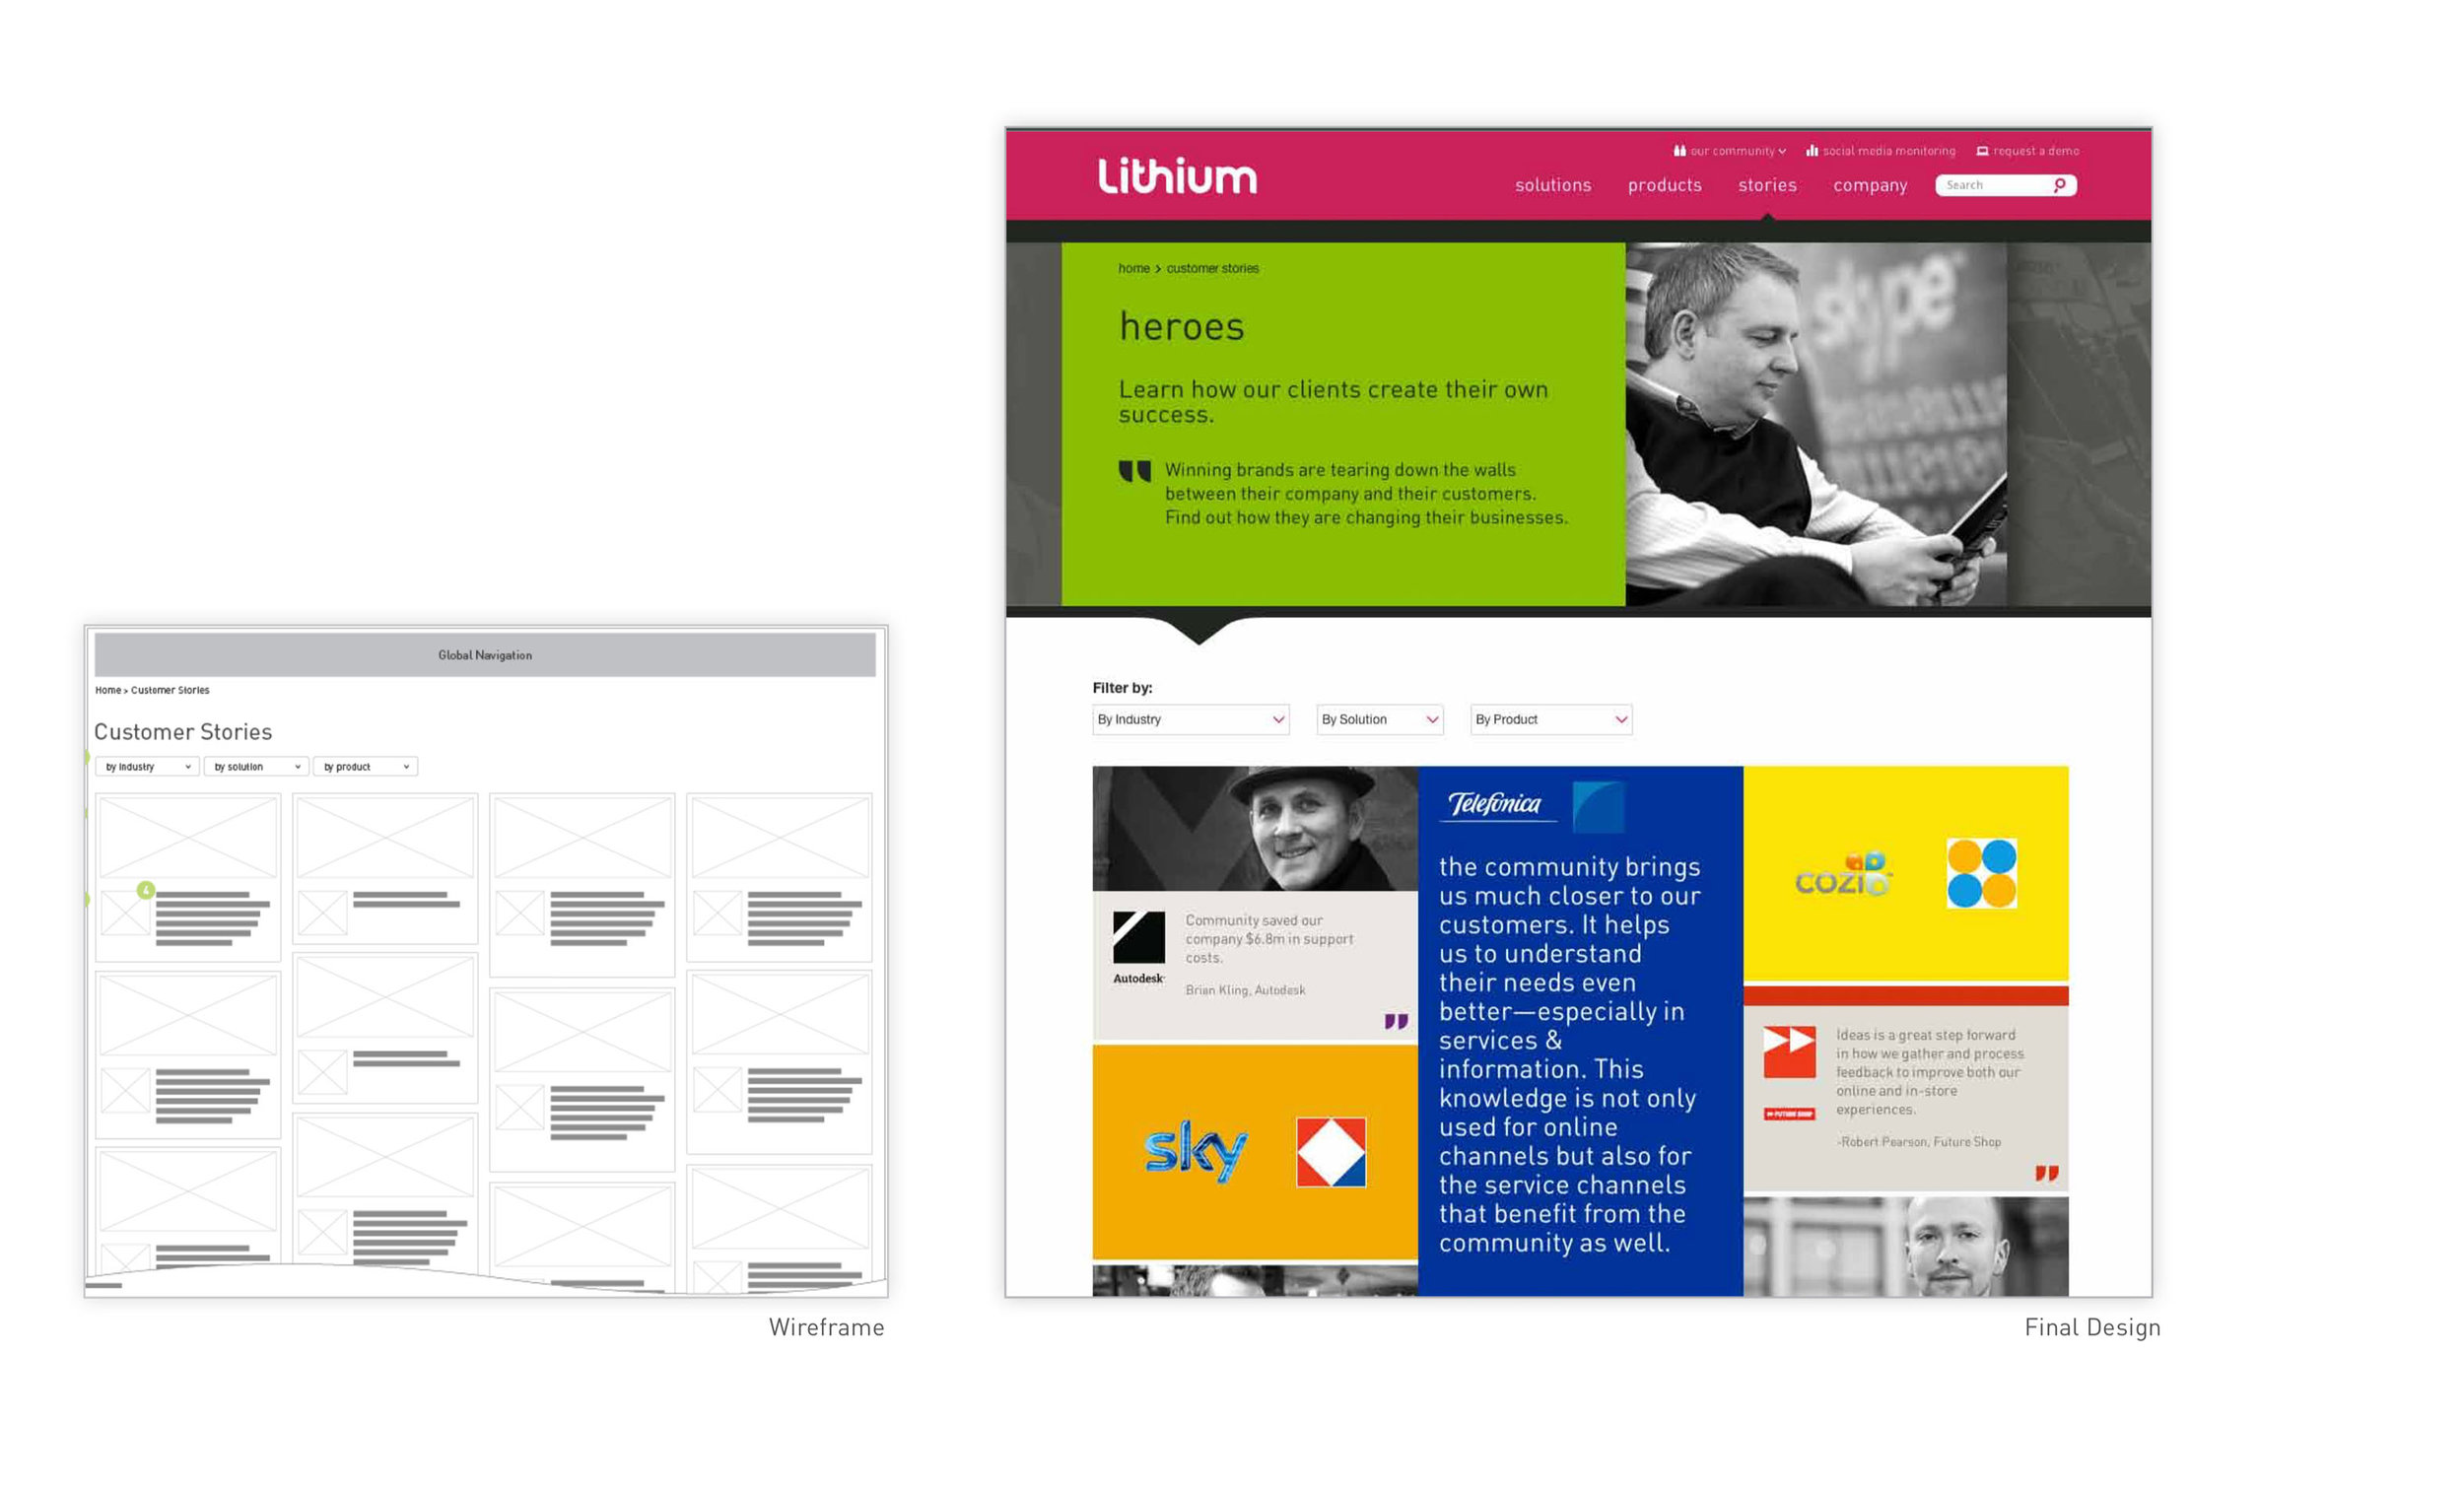 Multi-faceted Stories - Lithium had a powerful brand story to tell, but the homepage lacked a messaging platform to tell that story. With the new homepage design, the Lithium brand is extended to an interactive interface, allowing many types of messages to be shared with users as soon as they arrive on Lithium's site.